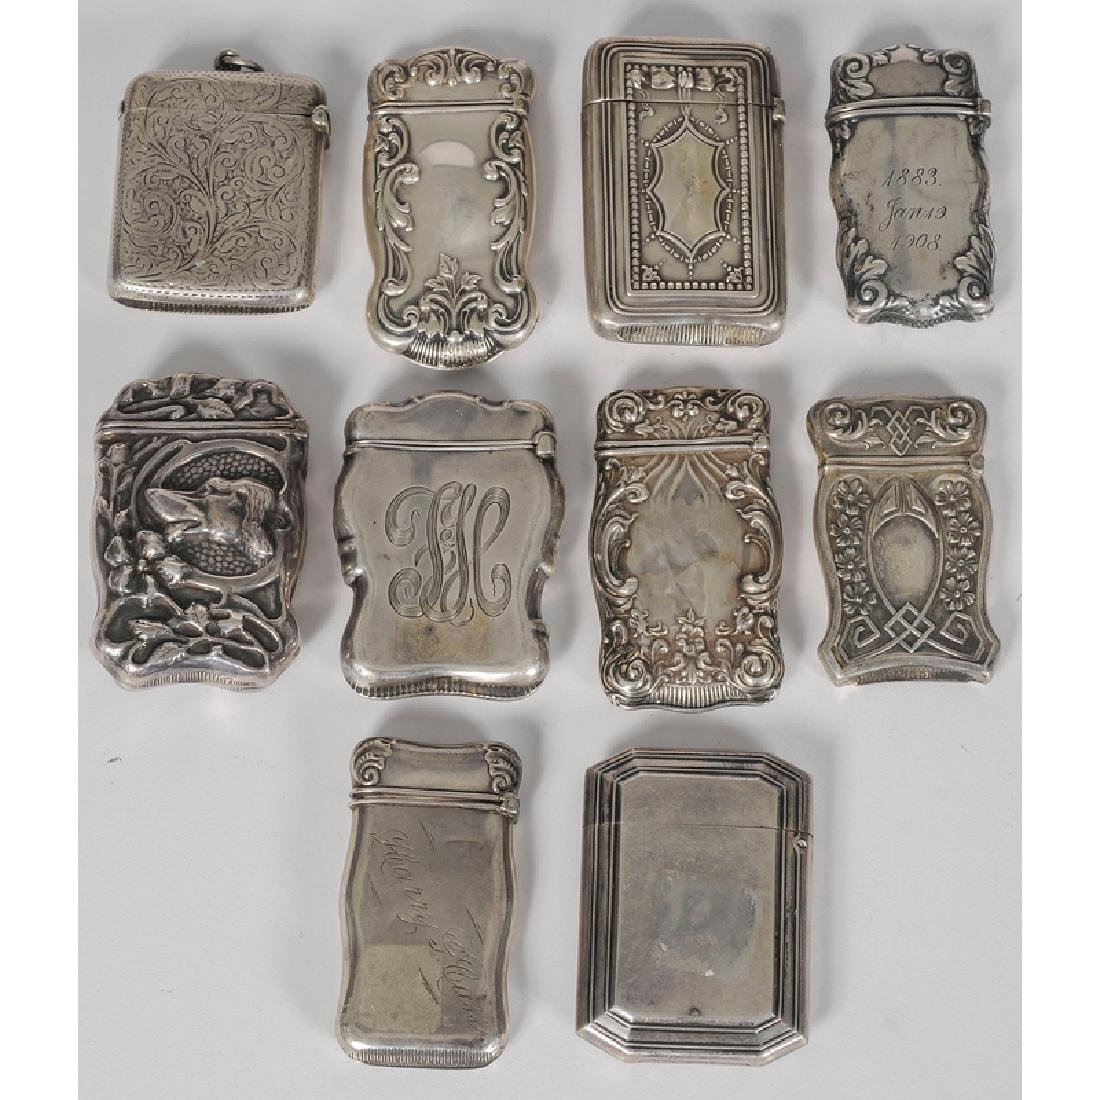 Unger Bros. and Other Sterling Silver Match Safes - 2